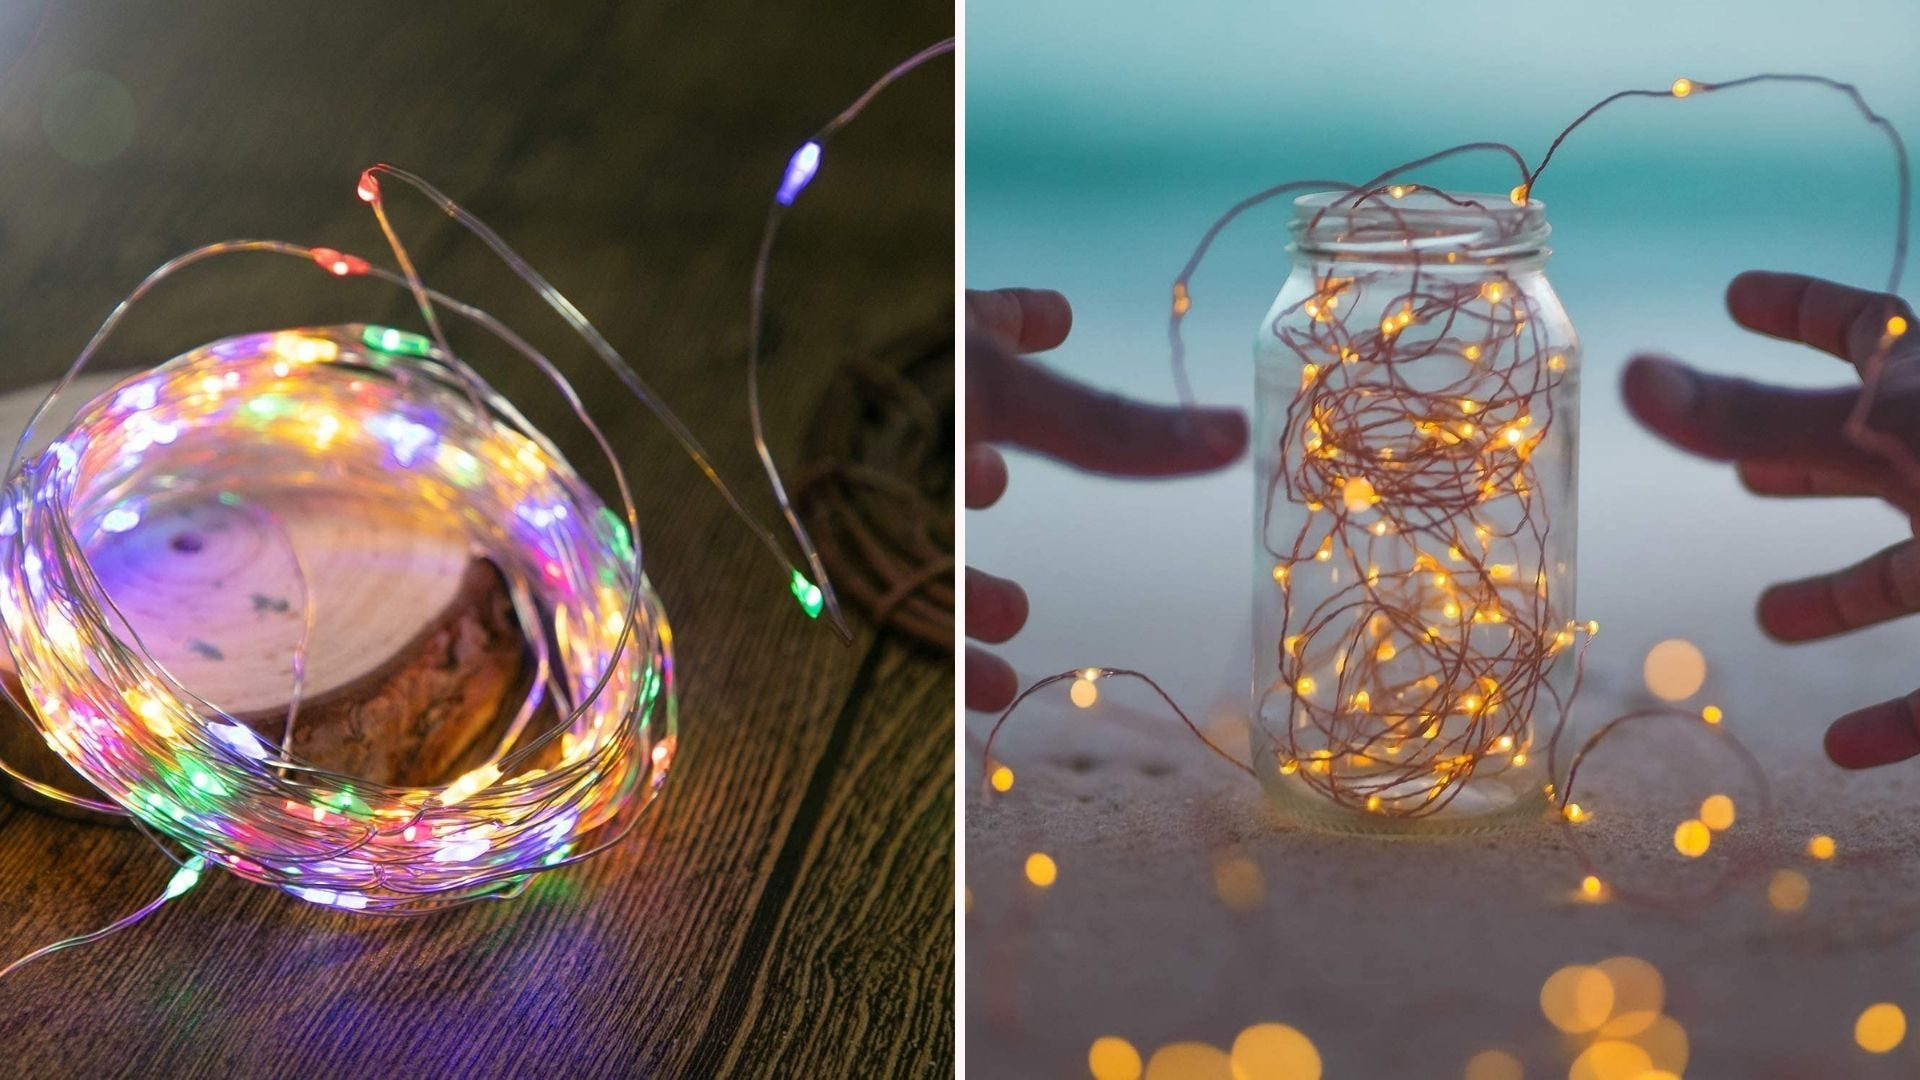 Two side by side images of Brightown fairy string lights. The left image is of rainbow lights curled up and ready to install, and the right image is of fairy lights lit up in a jar.